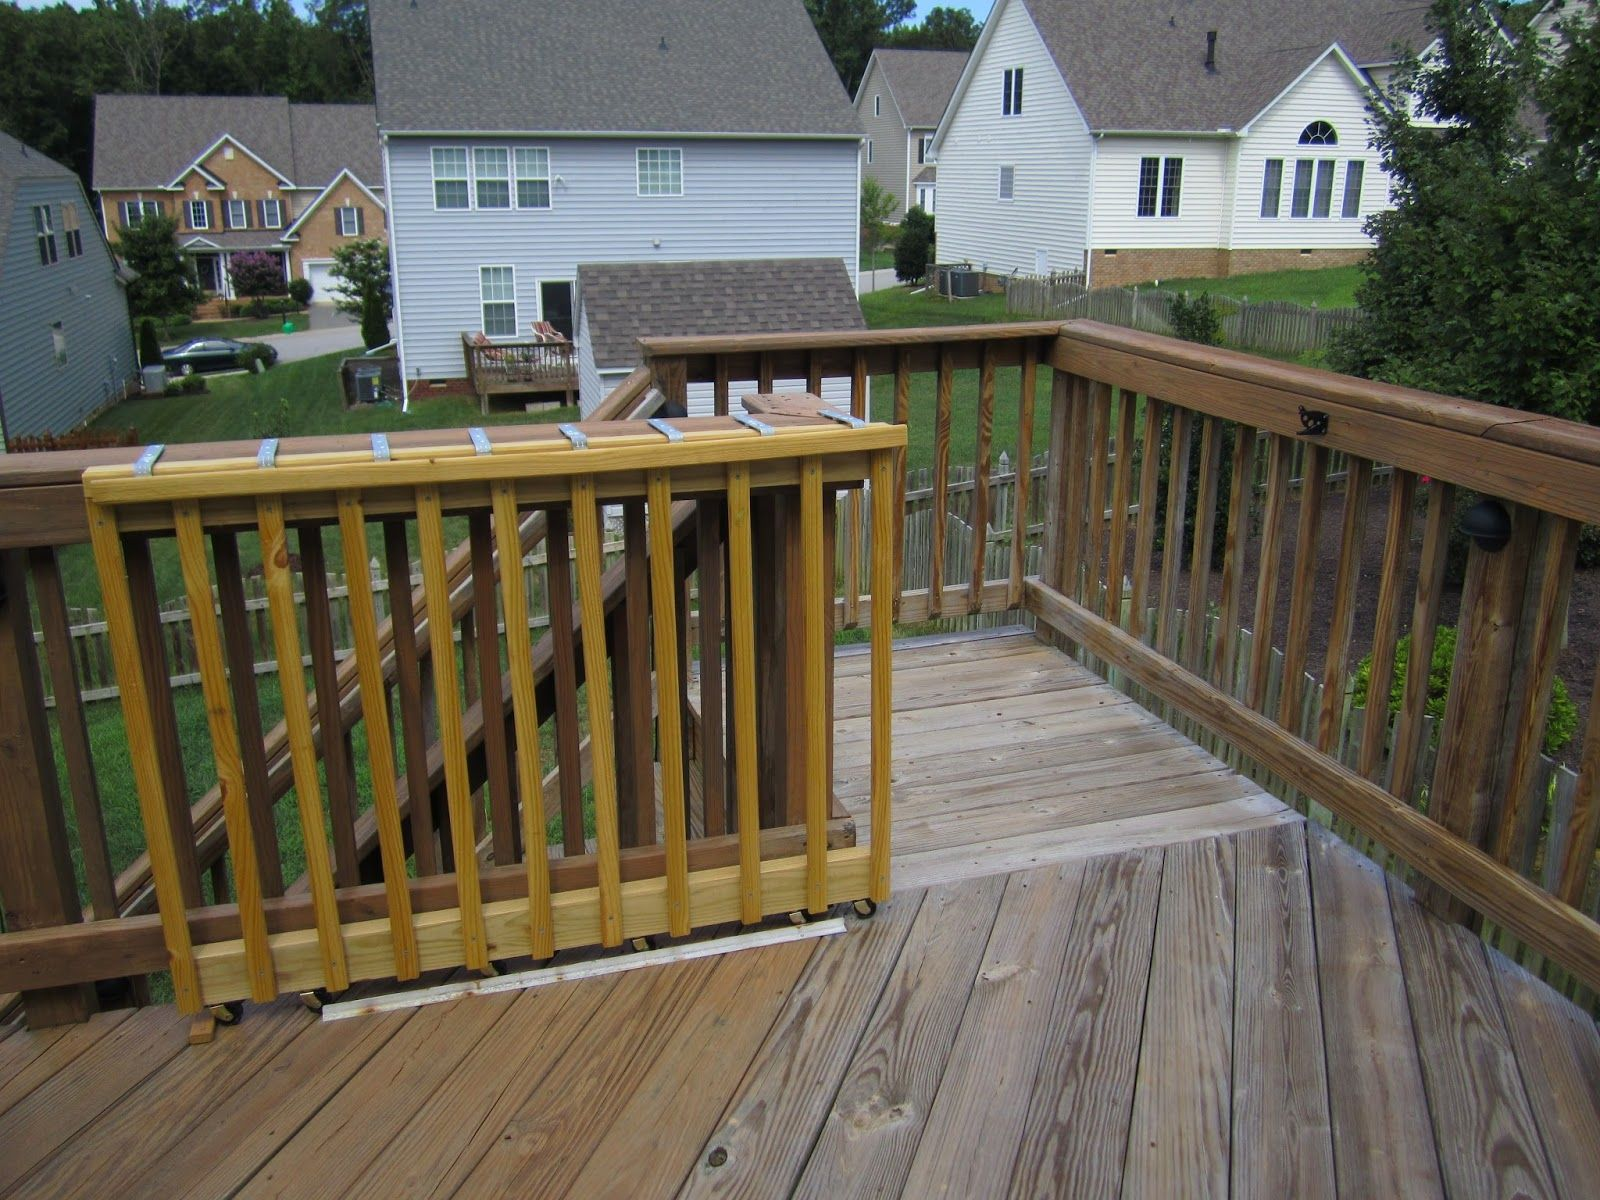 Diy A Sliding Gate For My Deck Deck Gate Porch Gate Building A Deck